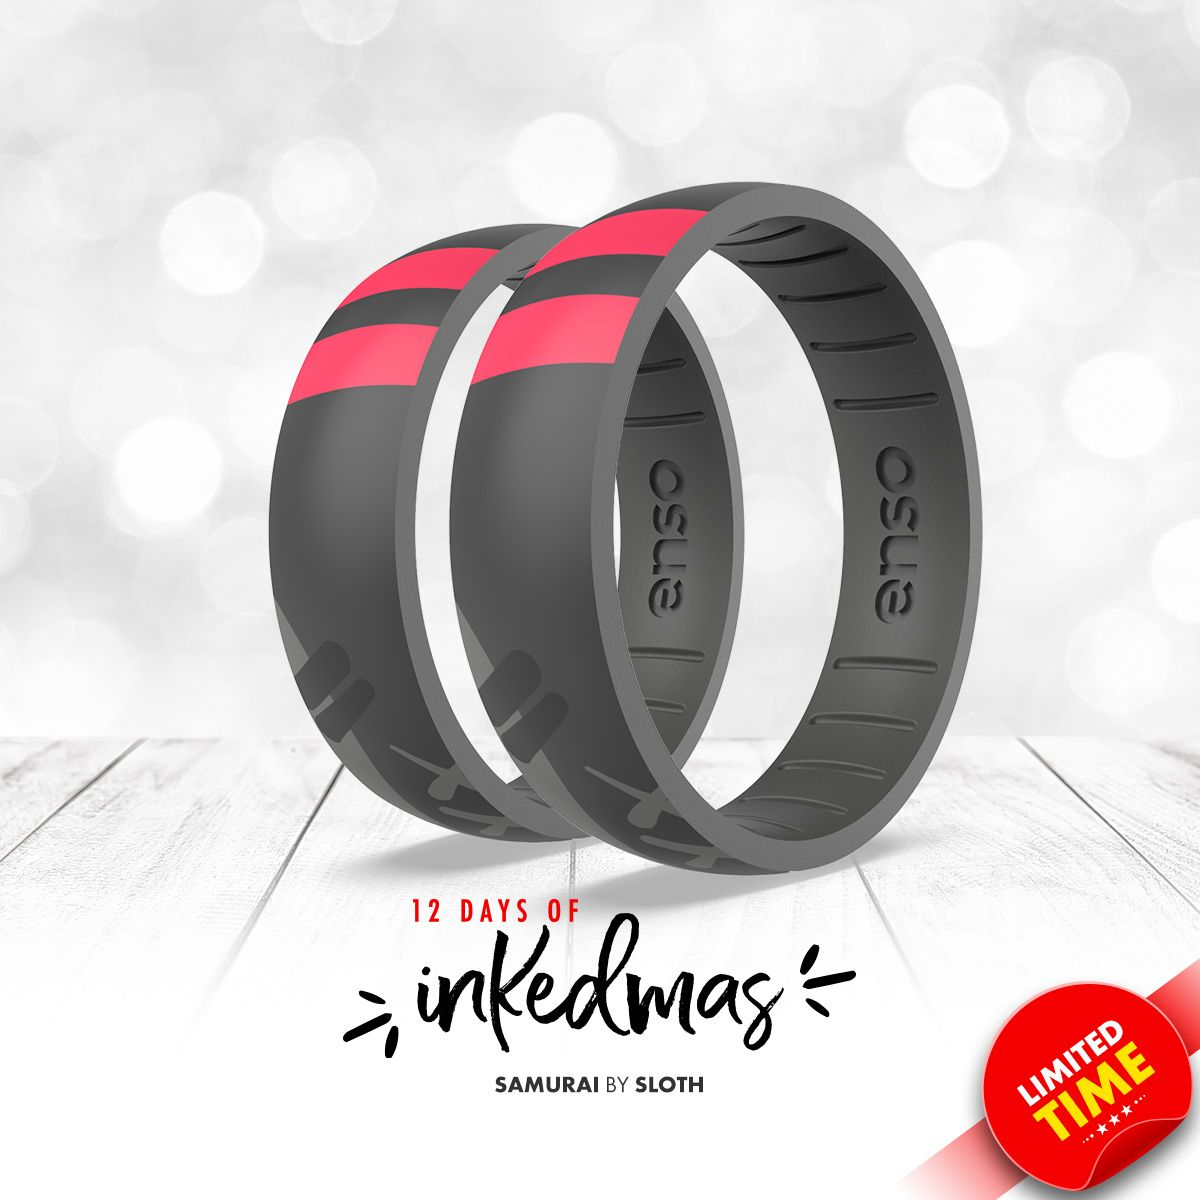 On the sixth day of #INKEDmas Enso Rings gave to me ... a Samurai ring by @iamsloth.  https://t.co/2Ph90Frrf1 https://t.co/ZNjMPuSn7T